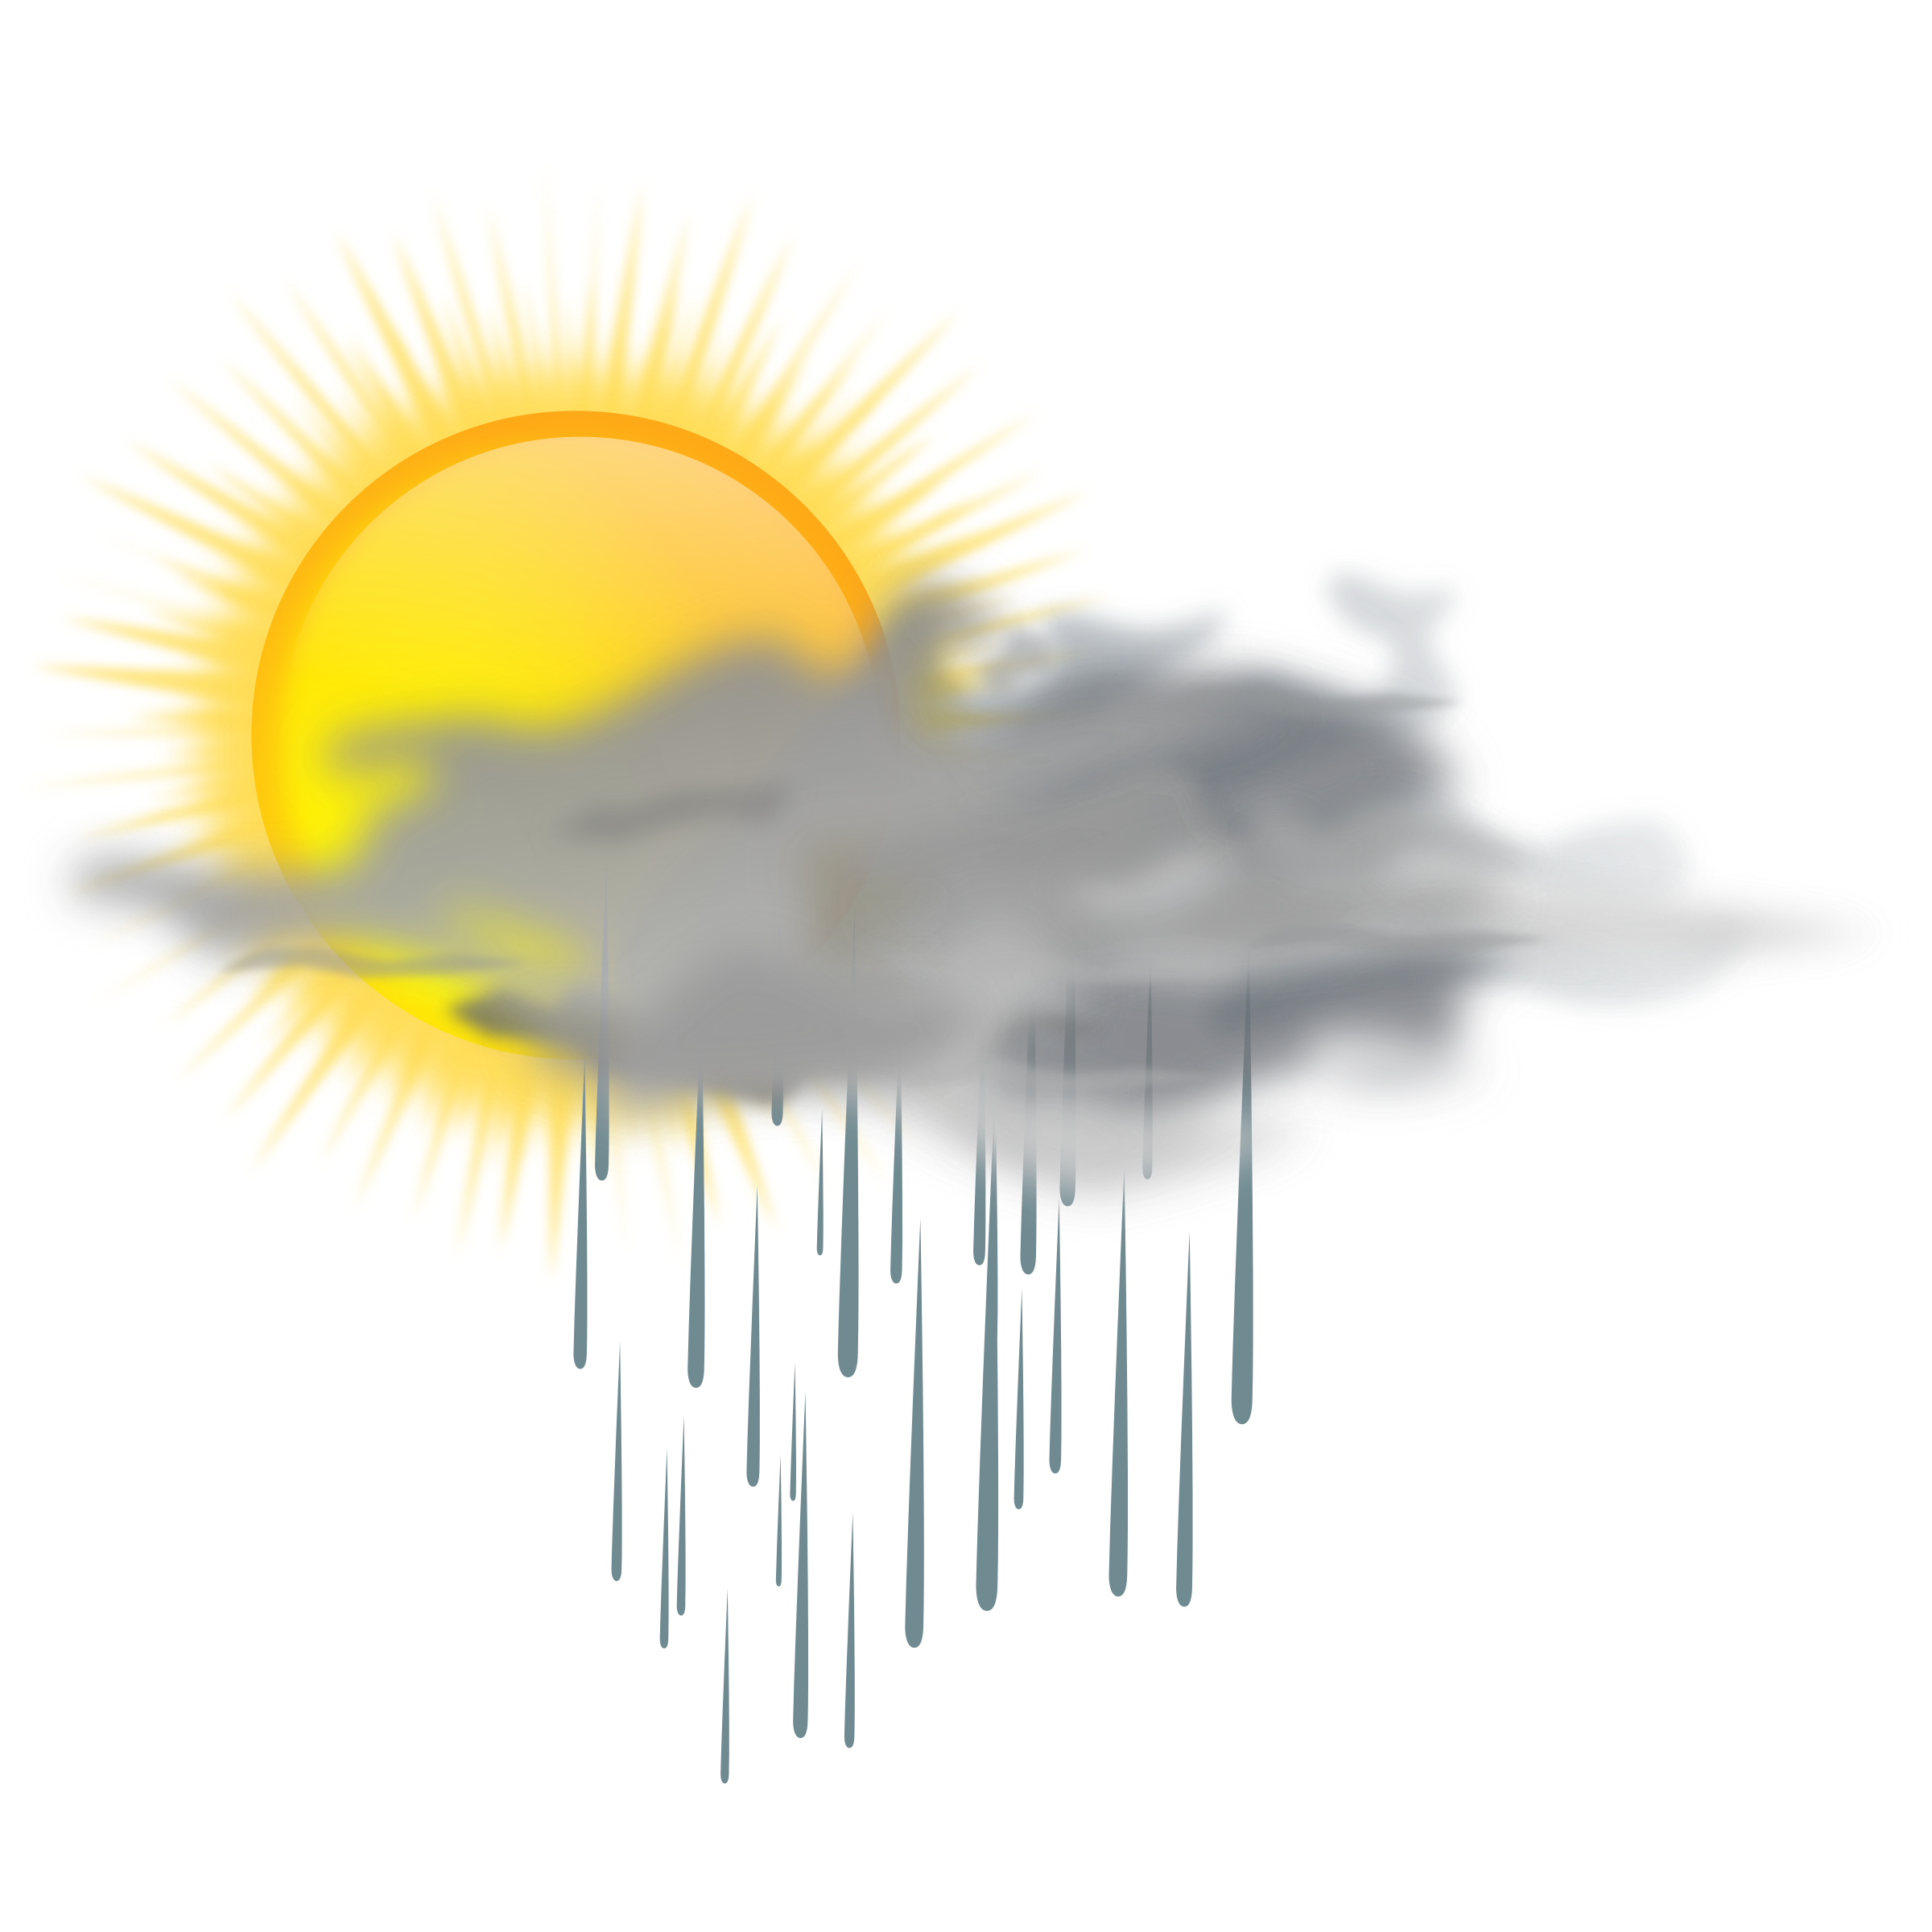 Sun sky clipart banner library library Clipart - weather icon - sun rain banner library library